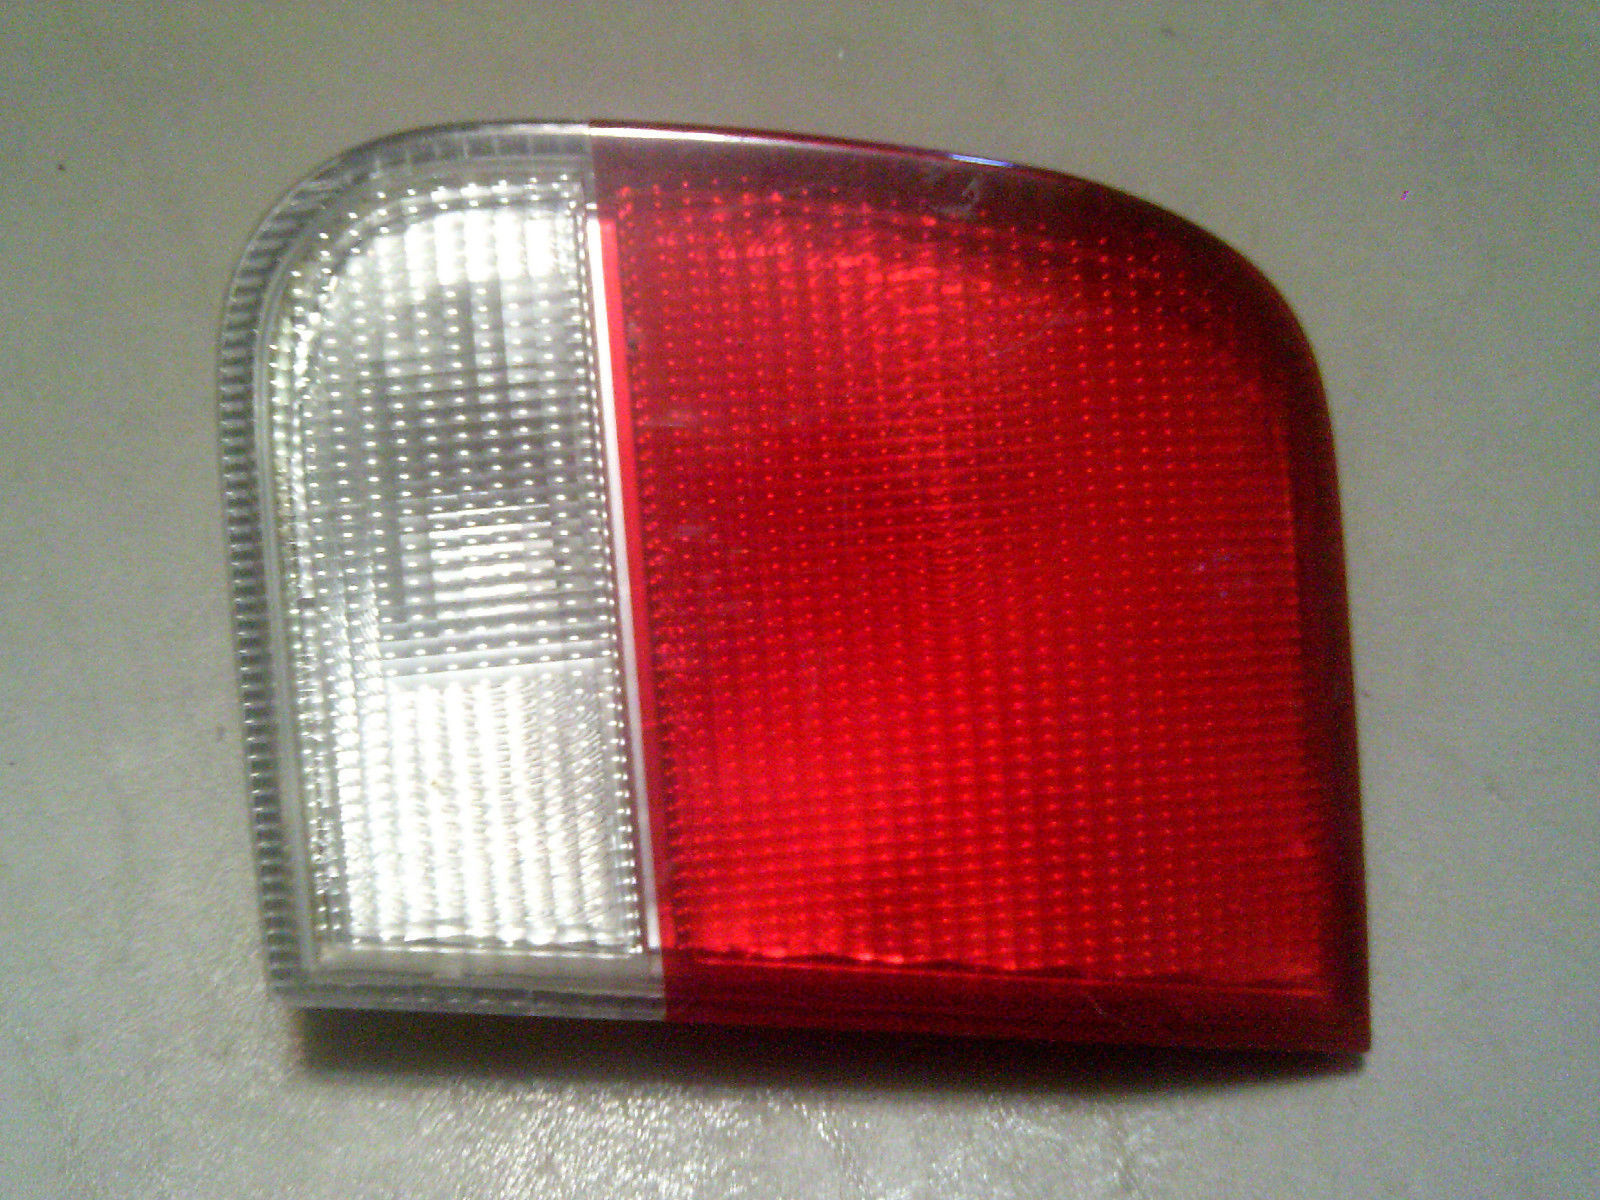 Primary image for 96 97 98 Honda Civic 4 Door Sedan RH Trunk Lid Mounted Tail Light Taillight